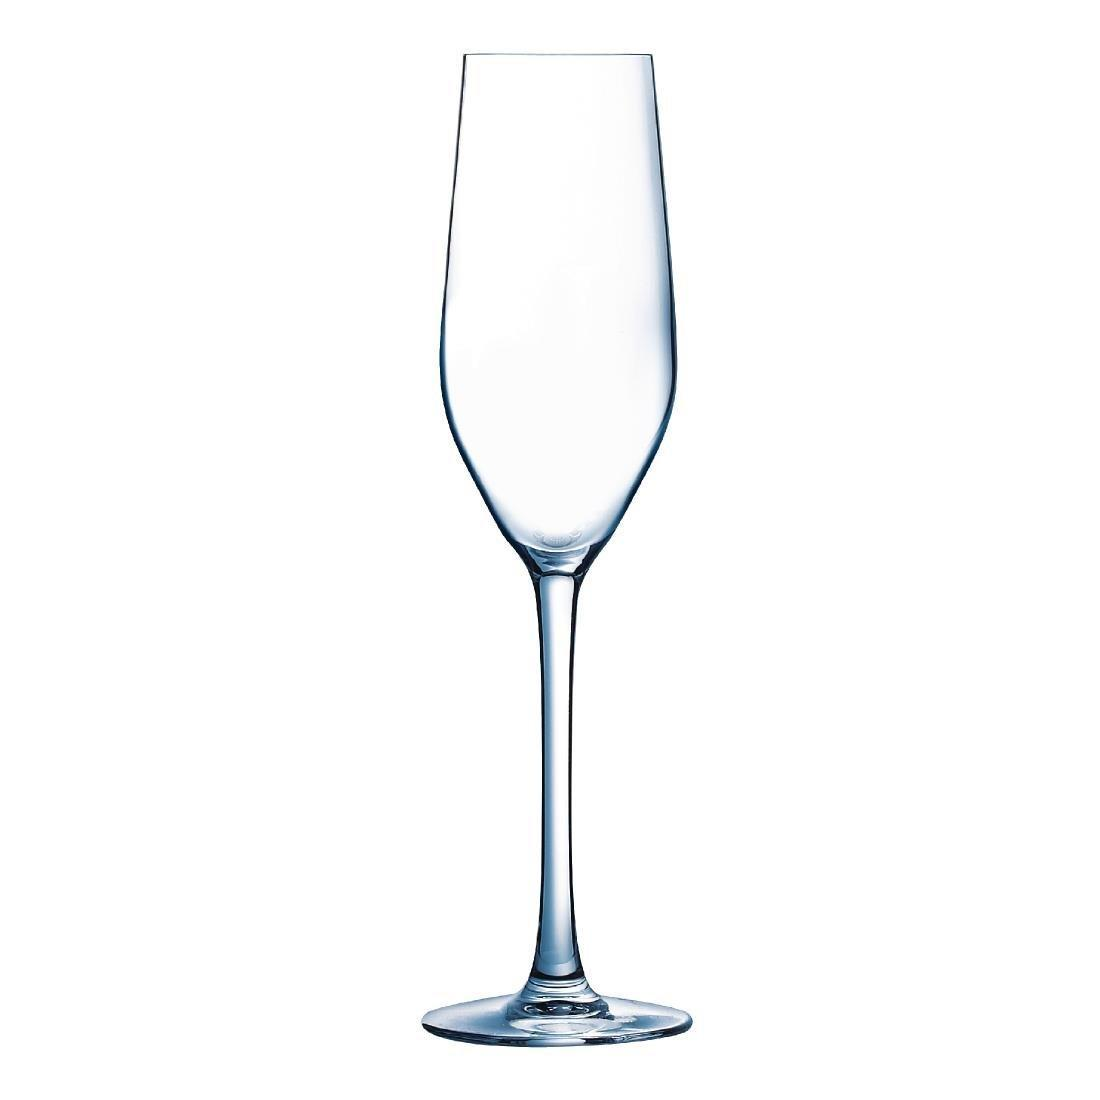 Arc Mineral Flute Glass Kwarx - 160ml 5.6oz (Box 24) - GD967